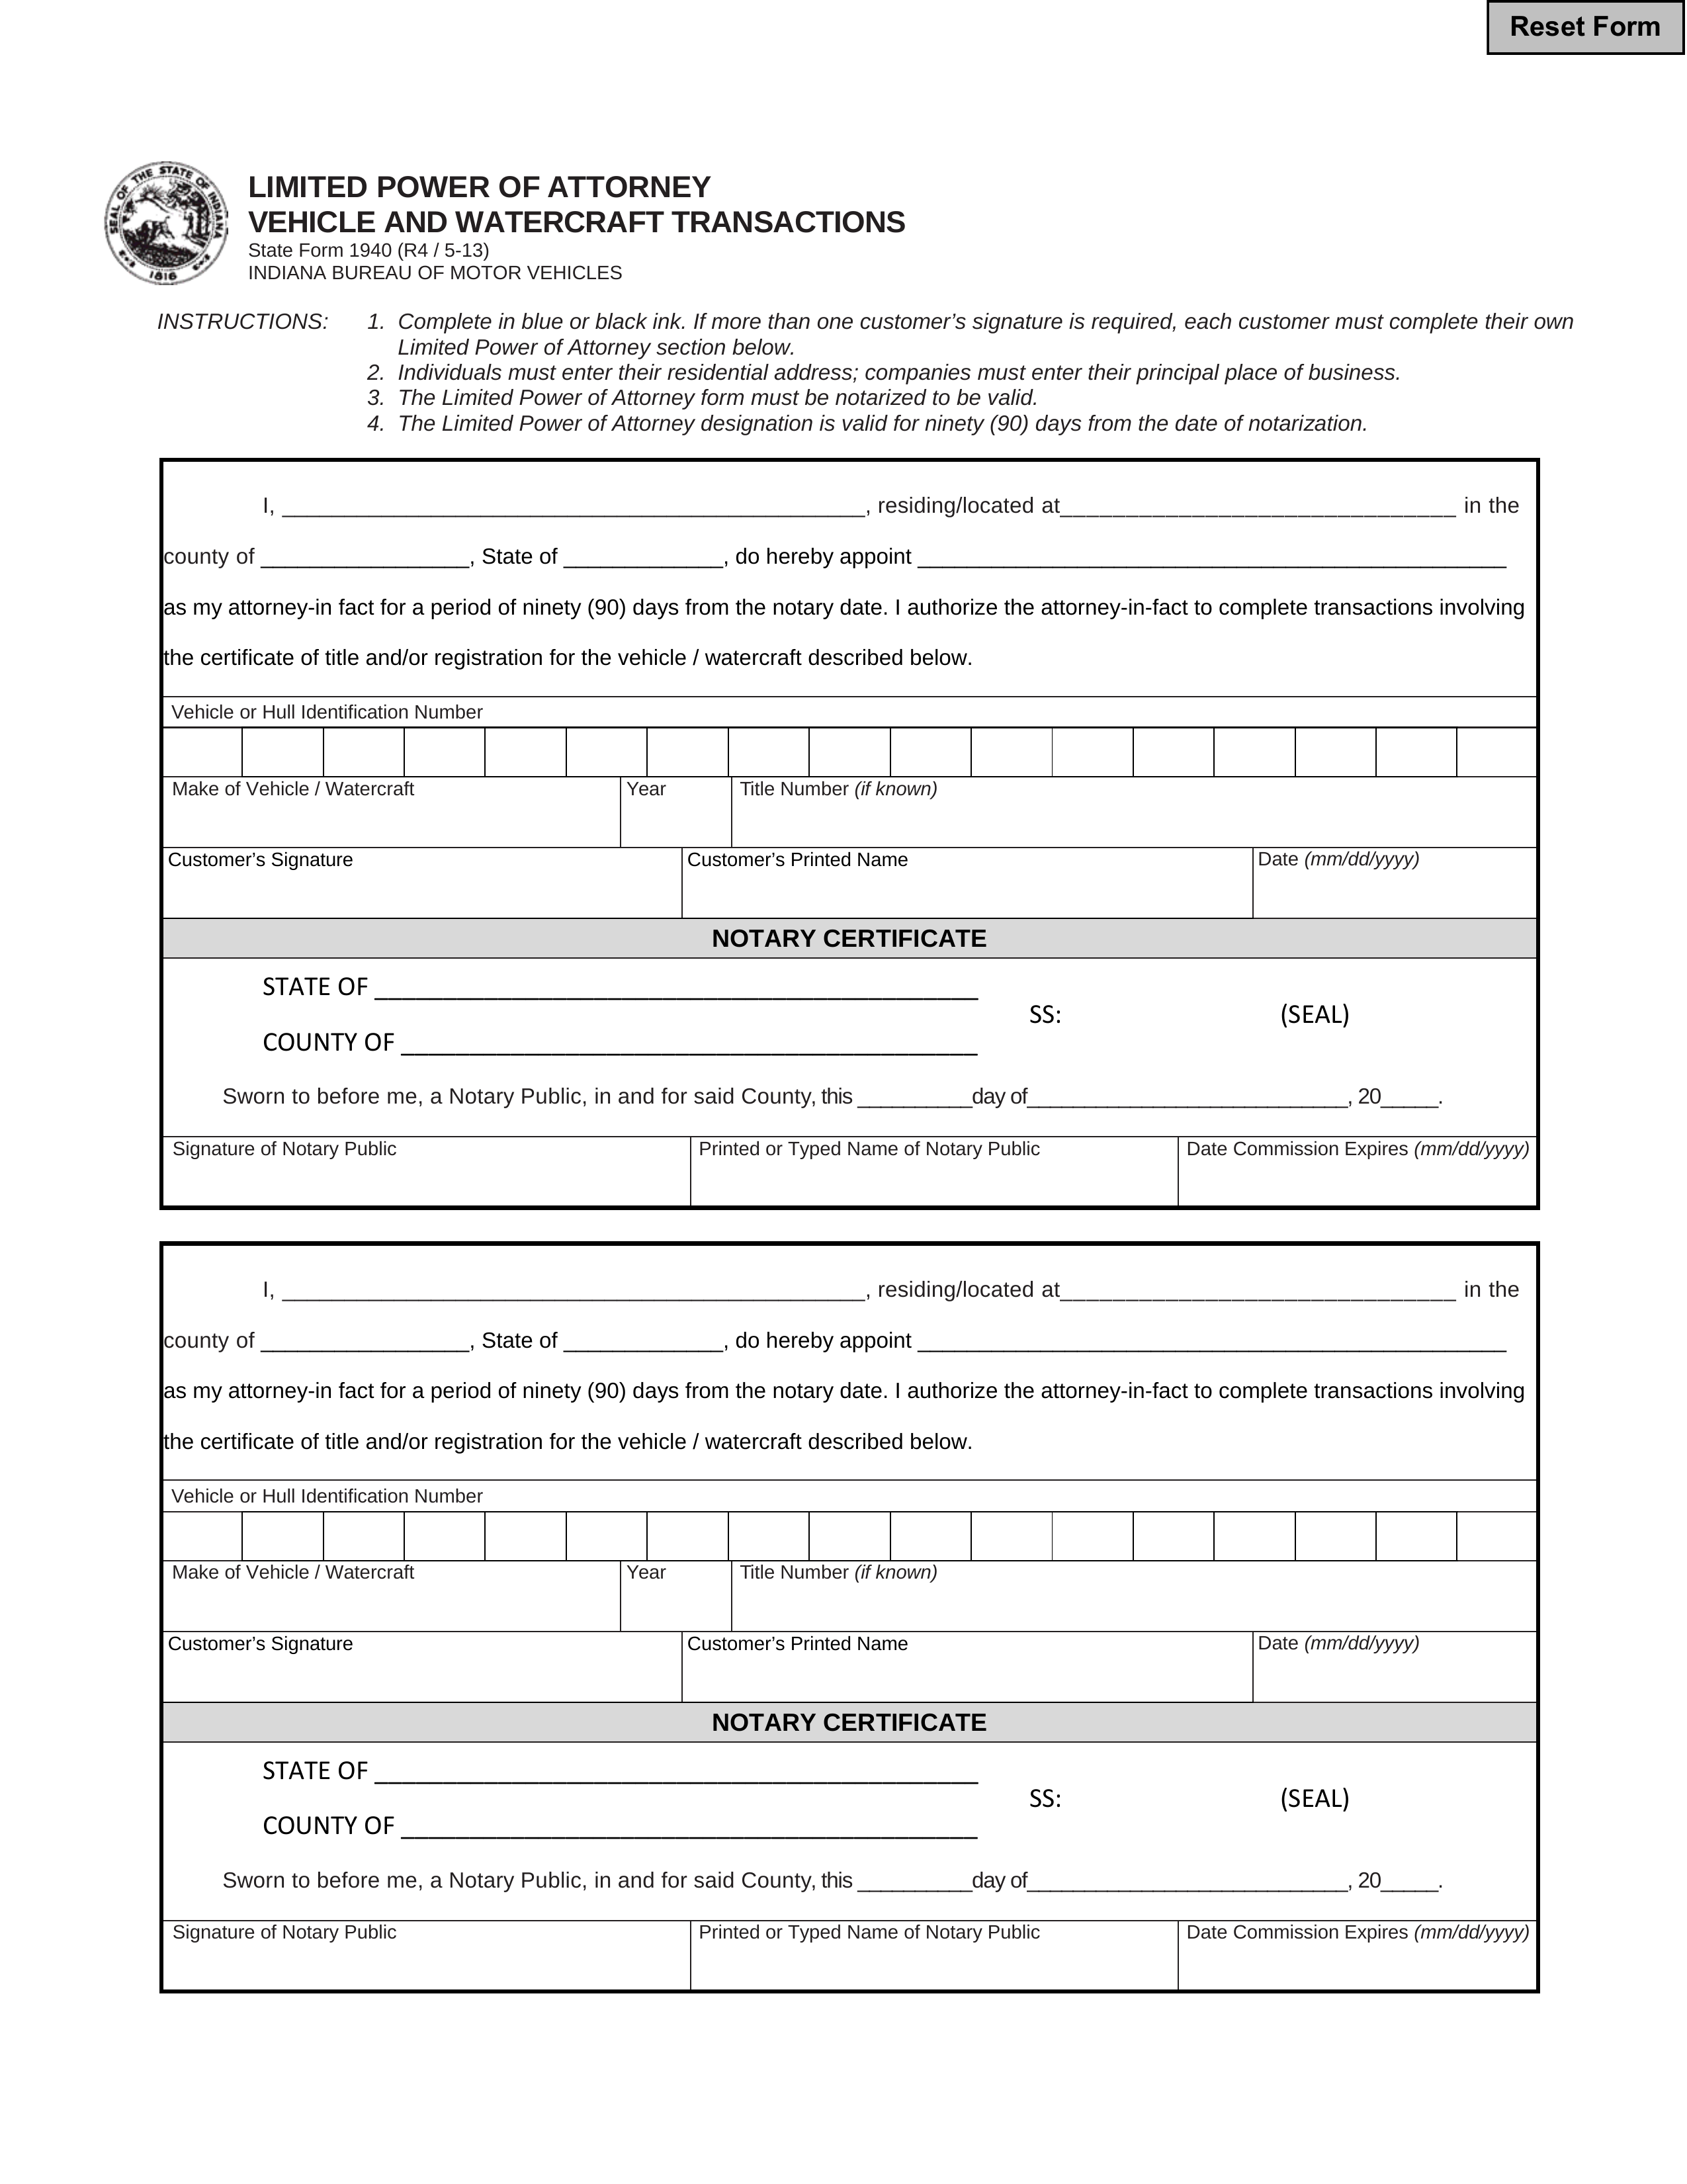 Free Indiana Motor Vehicle Power Of Attorney Form 01940